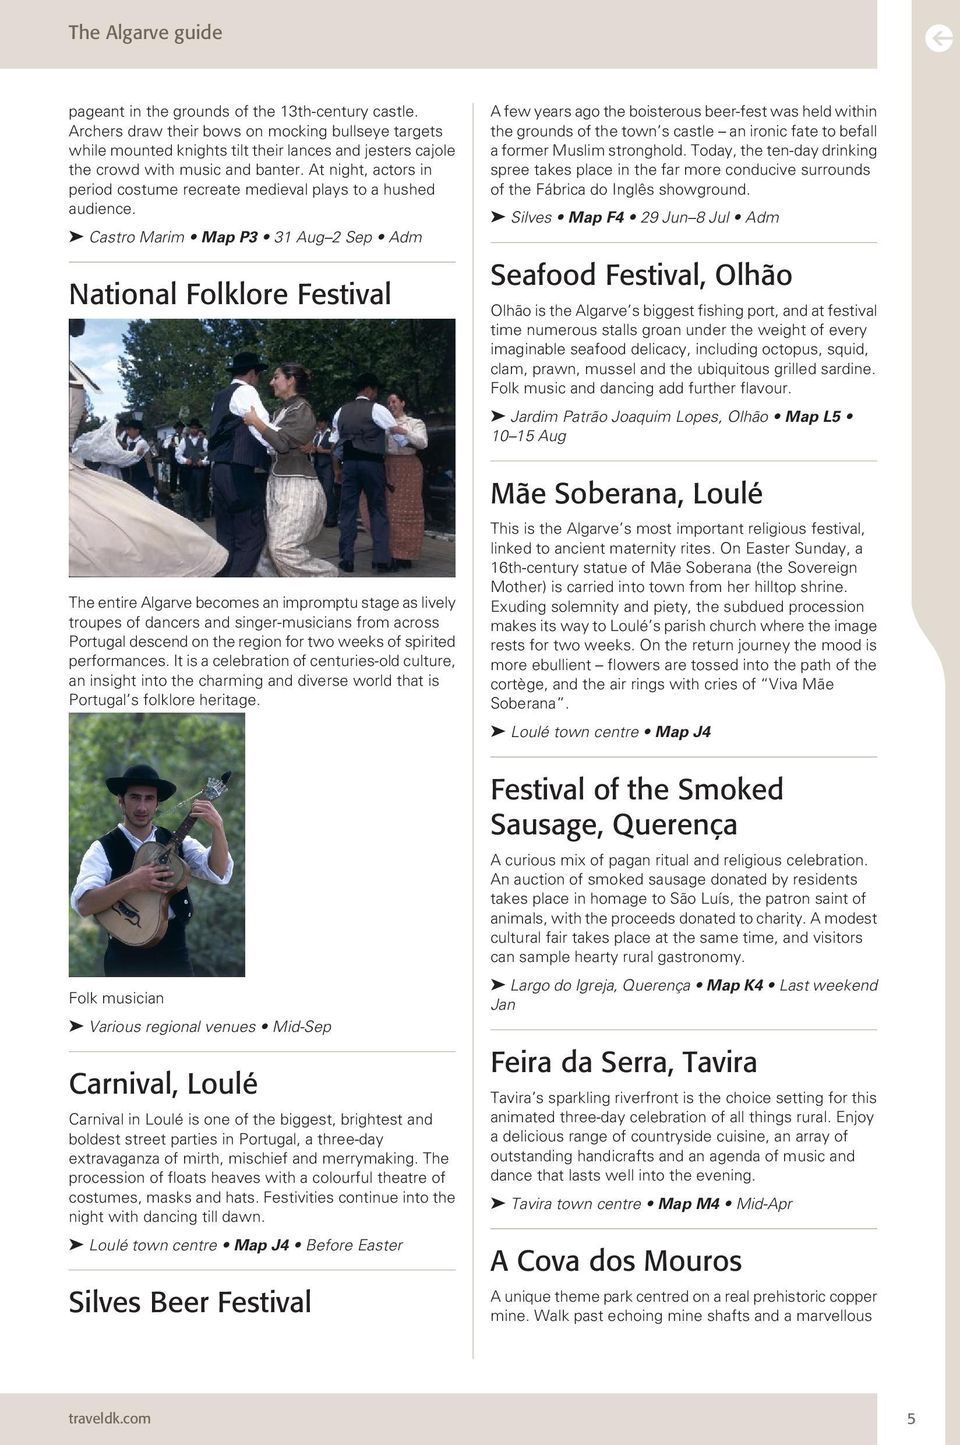 Castro Marim Map P3 31 Aug Sep Adm National Folklore Festival The entire Algarve becomes an impromptu stage as lively troupes of dancers and singer-musicians from across Portugal descend on the